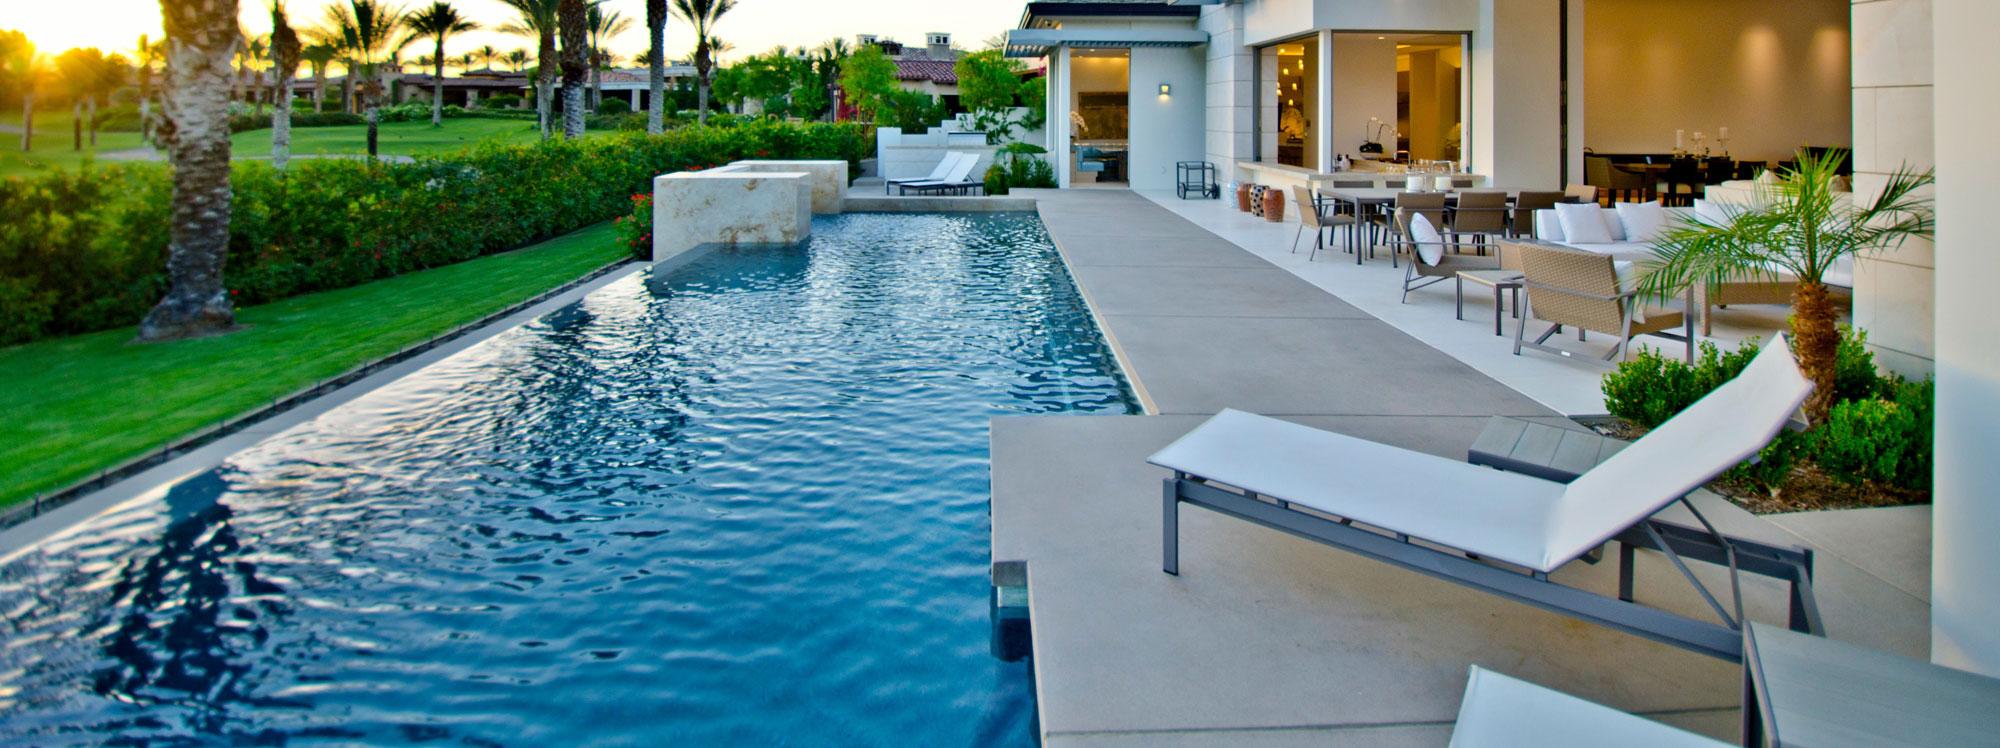 Backyard Pools. The Many Benefits Of Building A Backyard Pool Pools ...